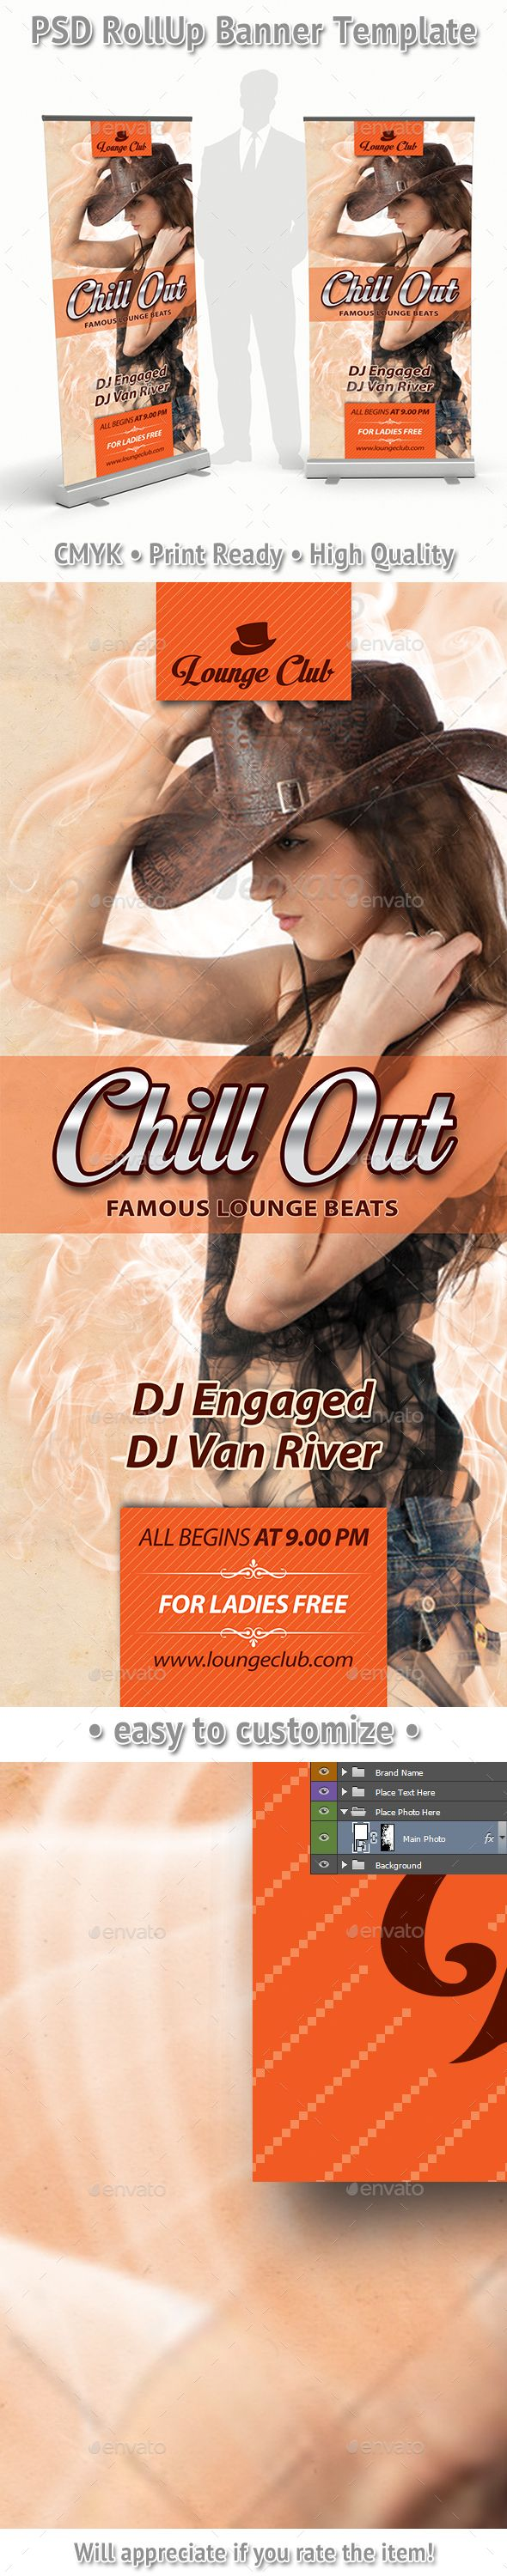 Chill Out Music Beats Rollup Banner 77